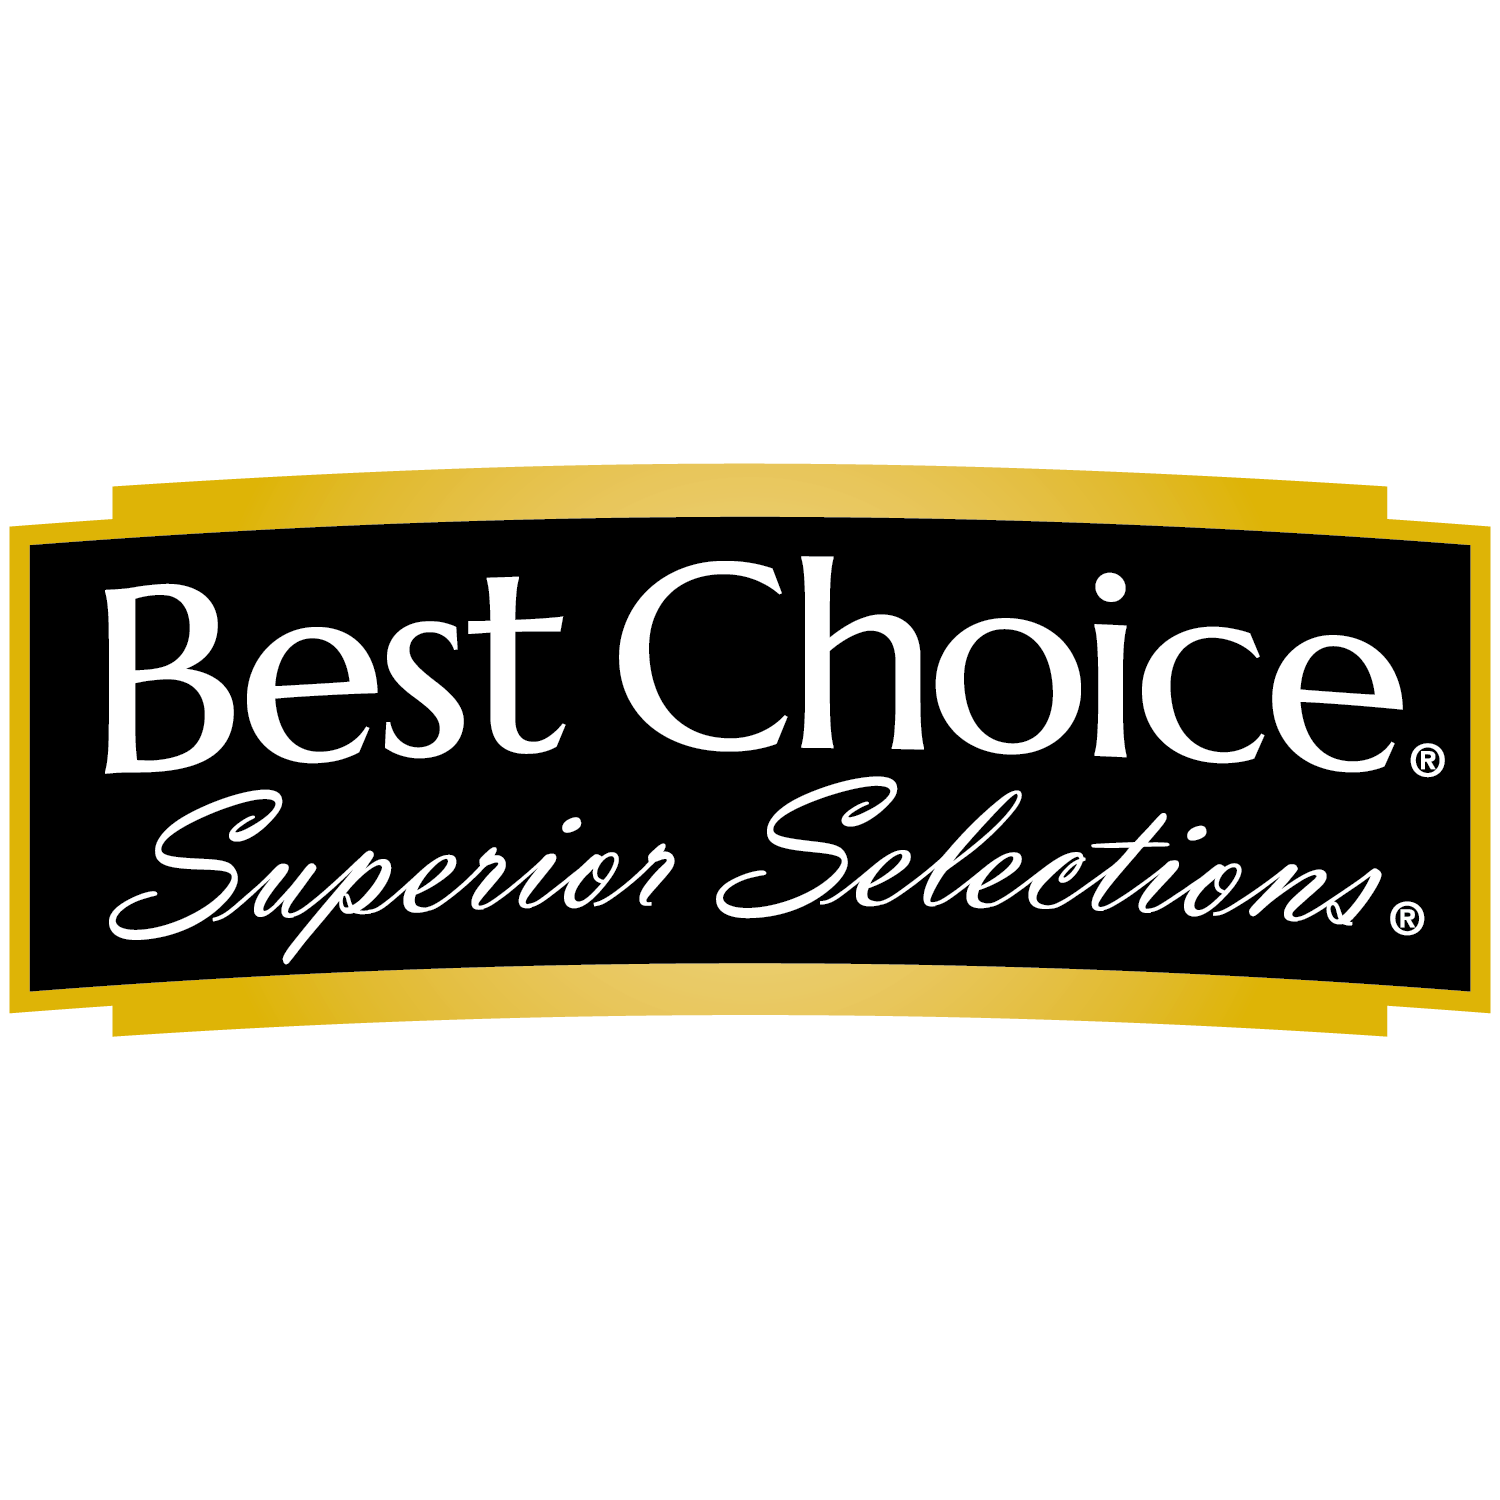 Best Choice Superior Selections®